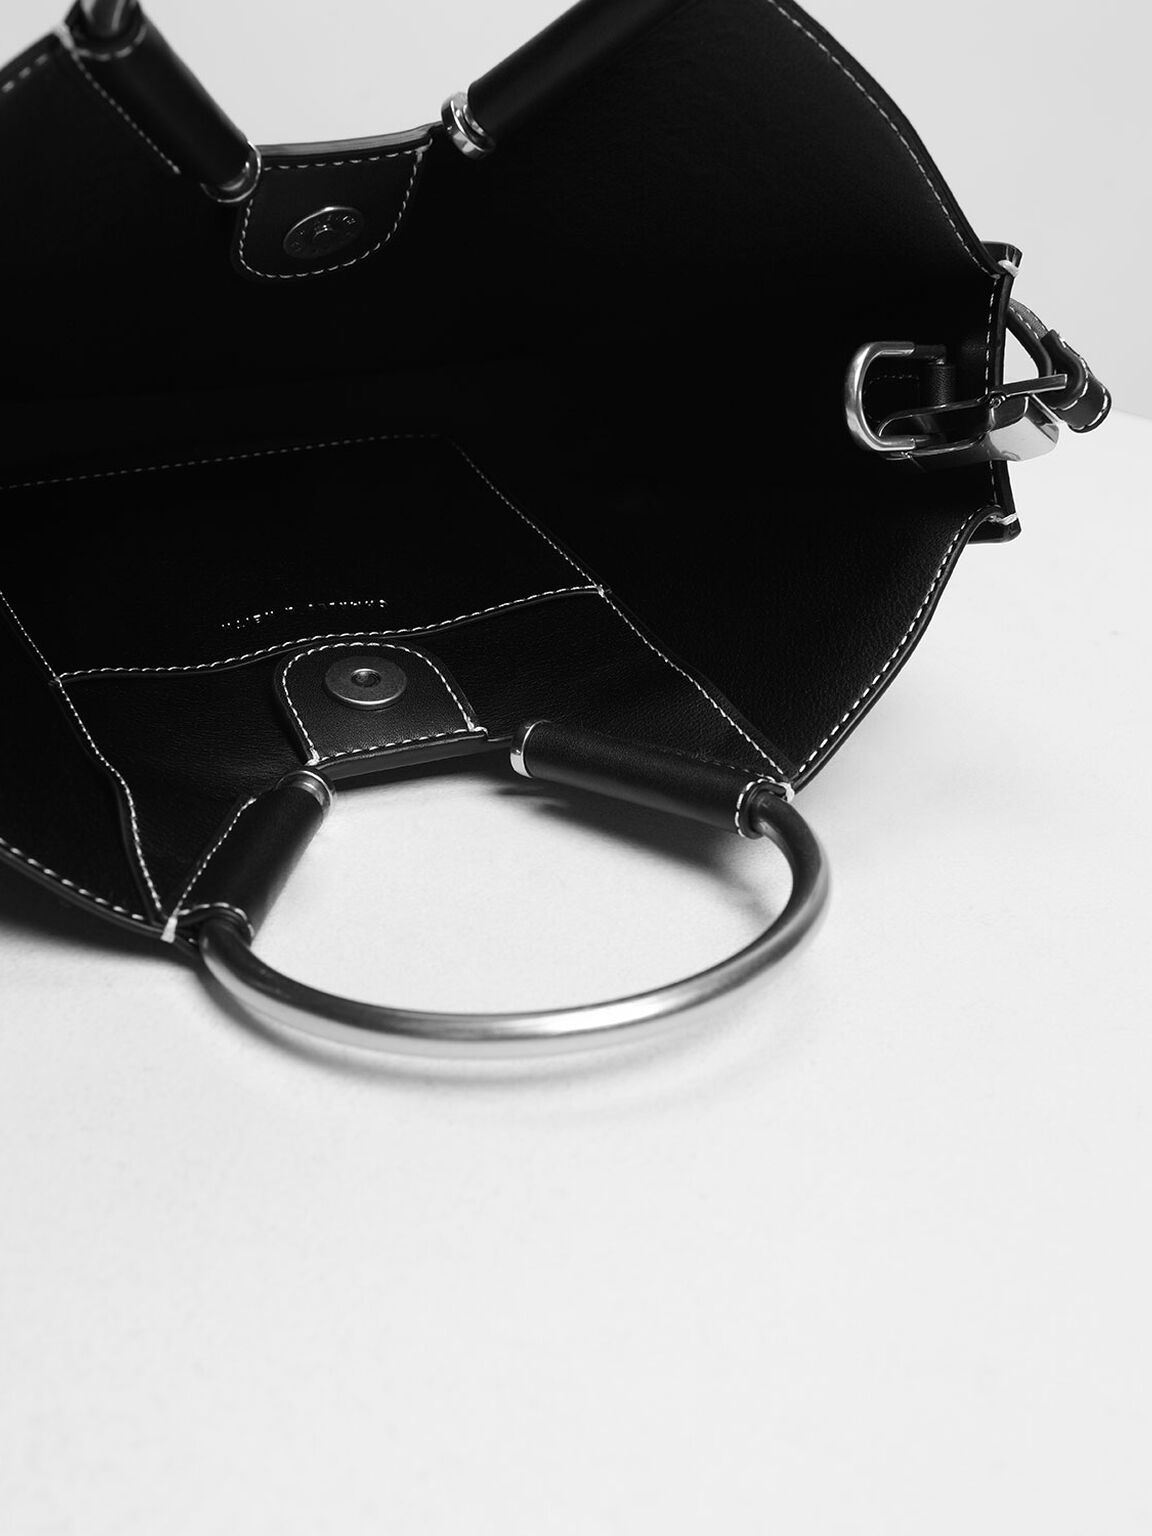 U Shape Top Handle Bag, Black, hi-res